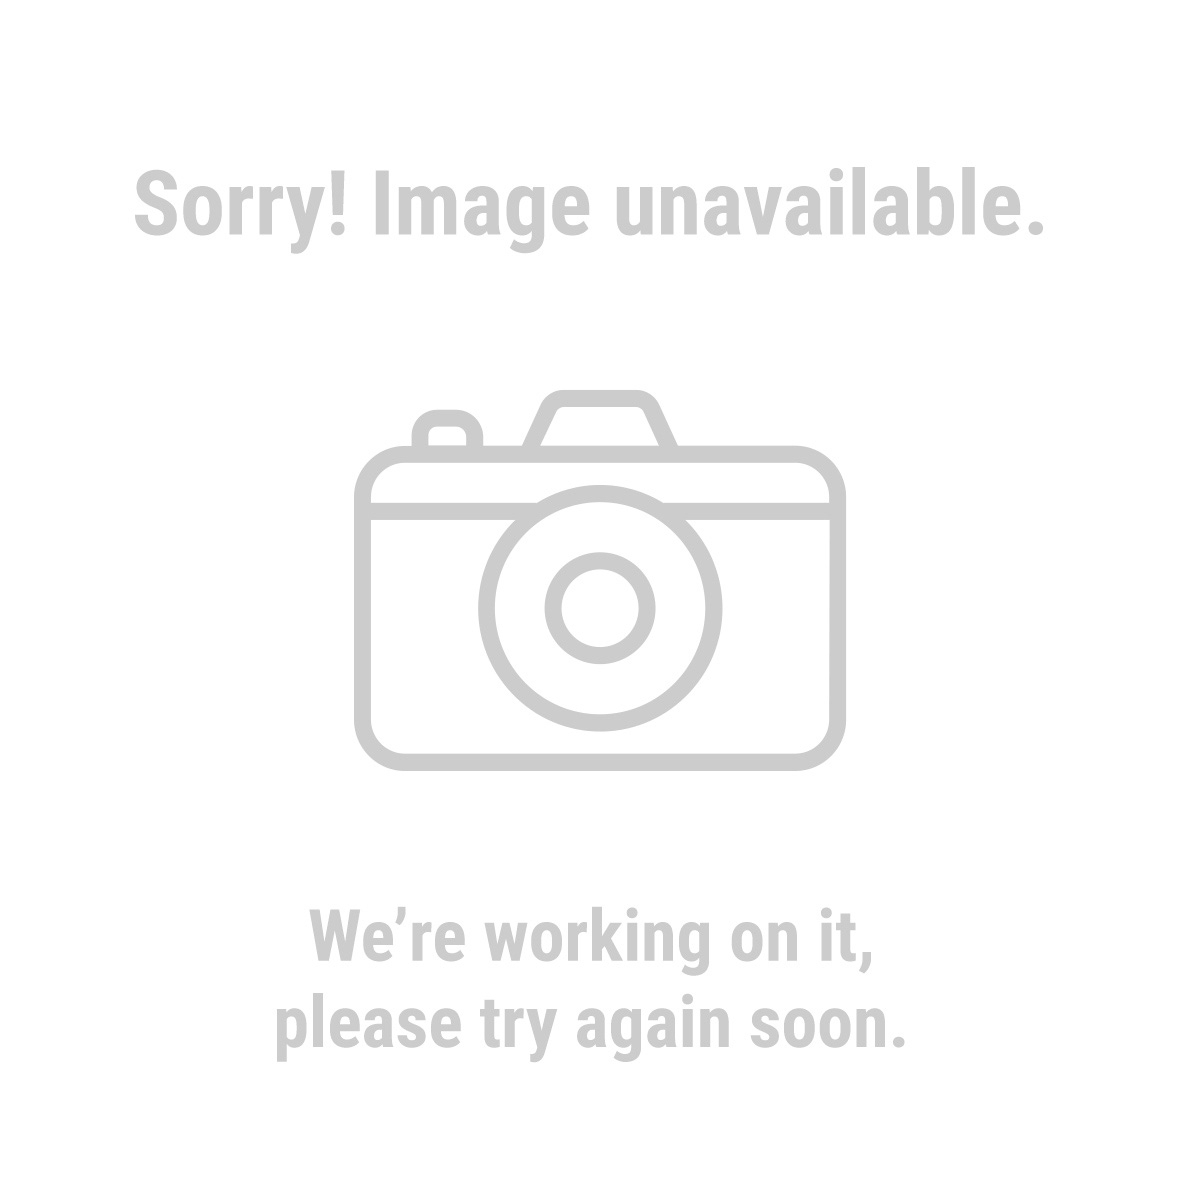 Central-Machinery 97181 4 in. x 36 in. Belt / 6 in. Disc Sander